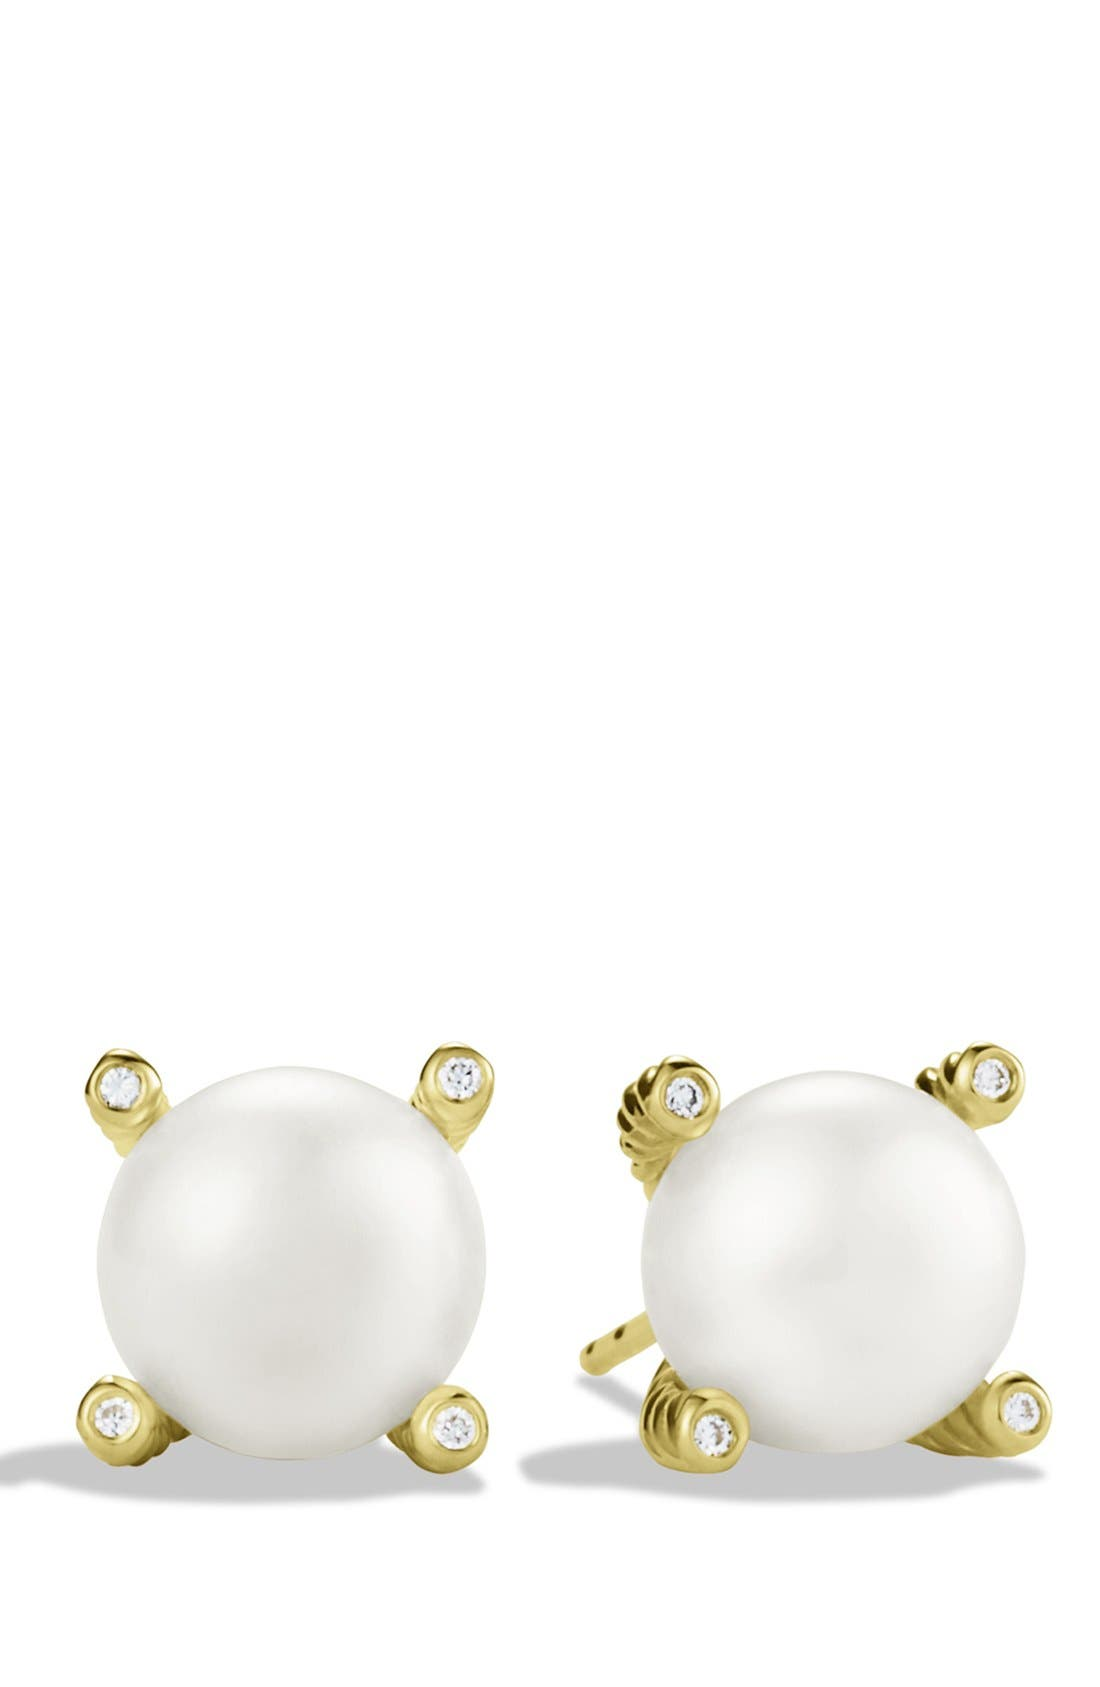 Pearl Earrings with Diamonds in Gold,                             Main thumbnail 1, color,                             PEARL